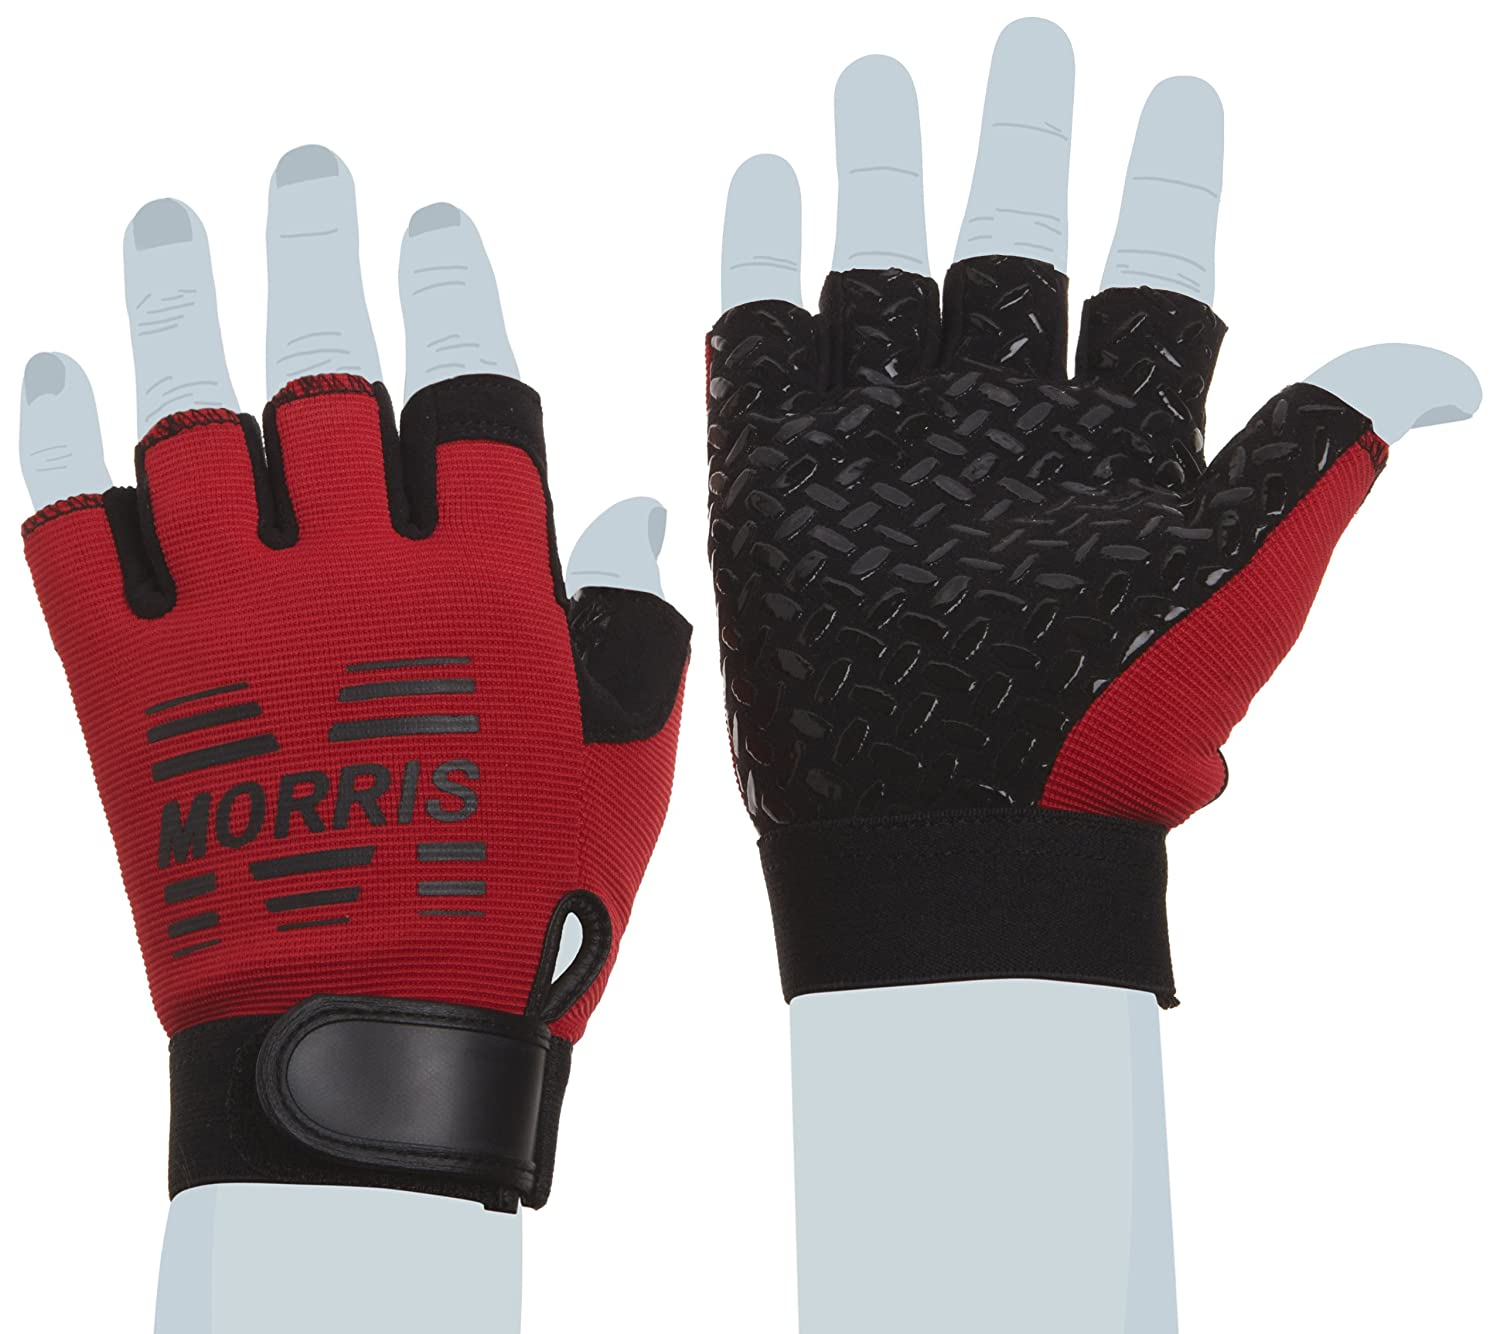 Morris Products 53162 High Performance Anti-Slip Gloves With Fingers Large